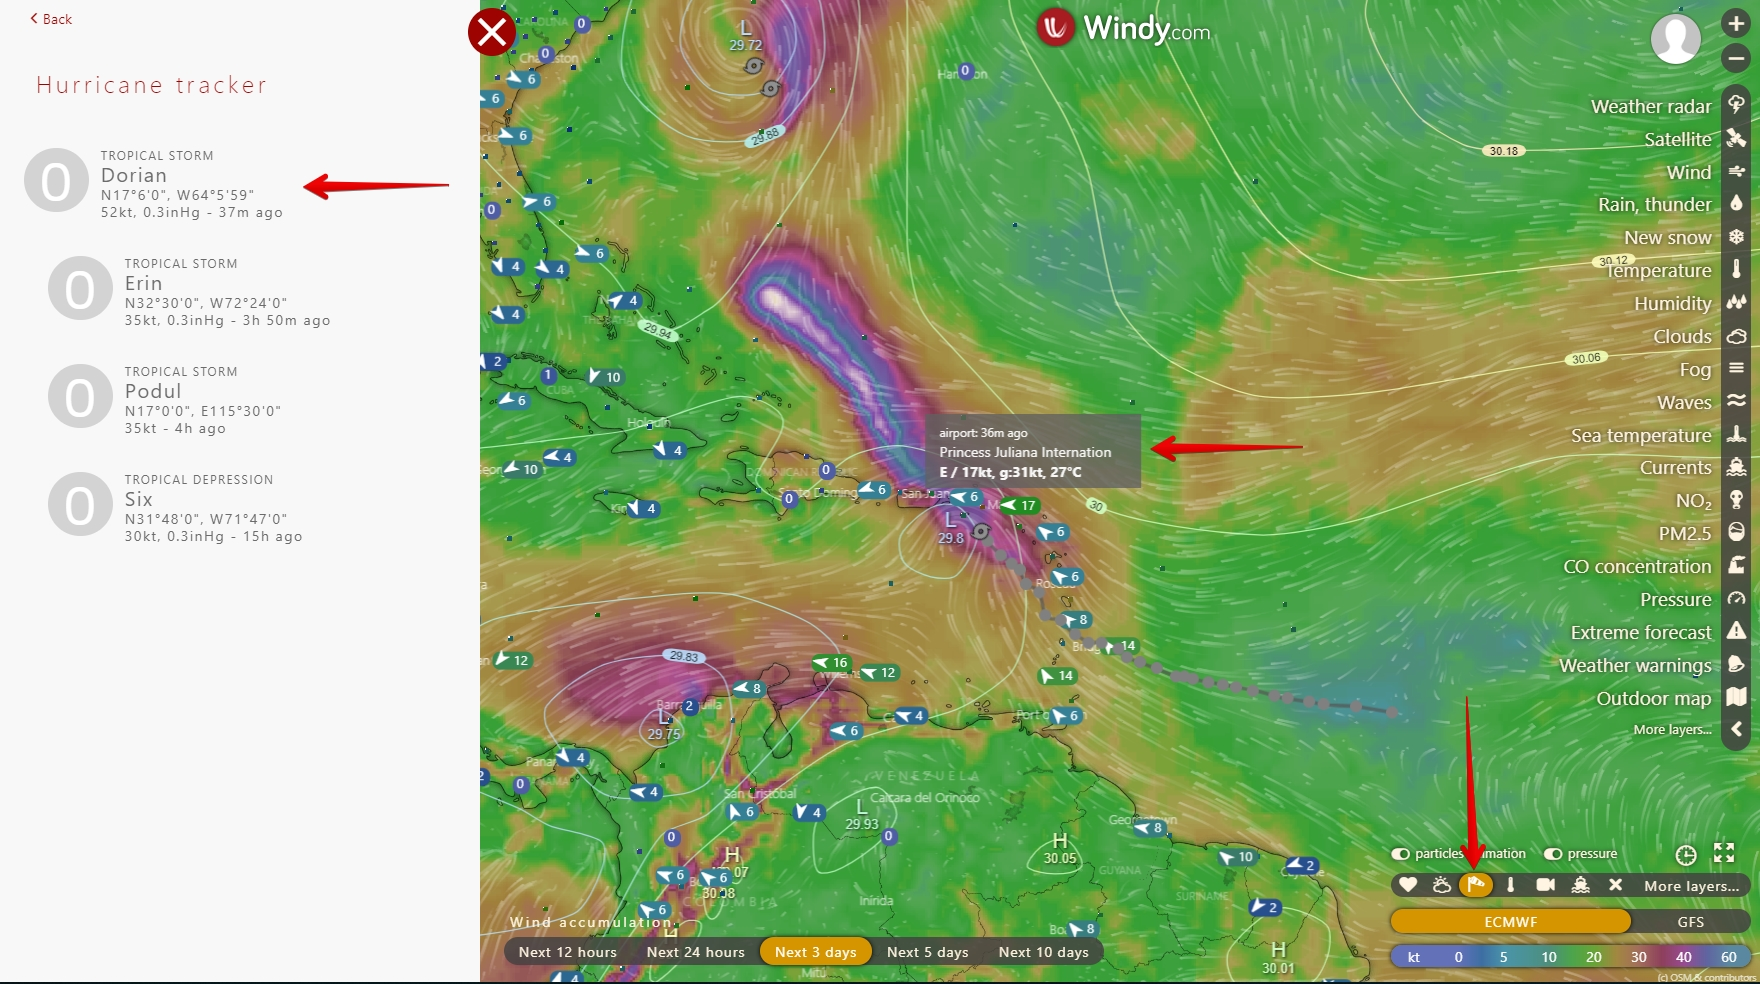 2019-08-28 14.38.52 - Windy_ Hurricane tracker - Google Chrome.jpg